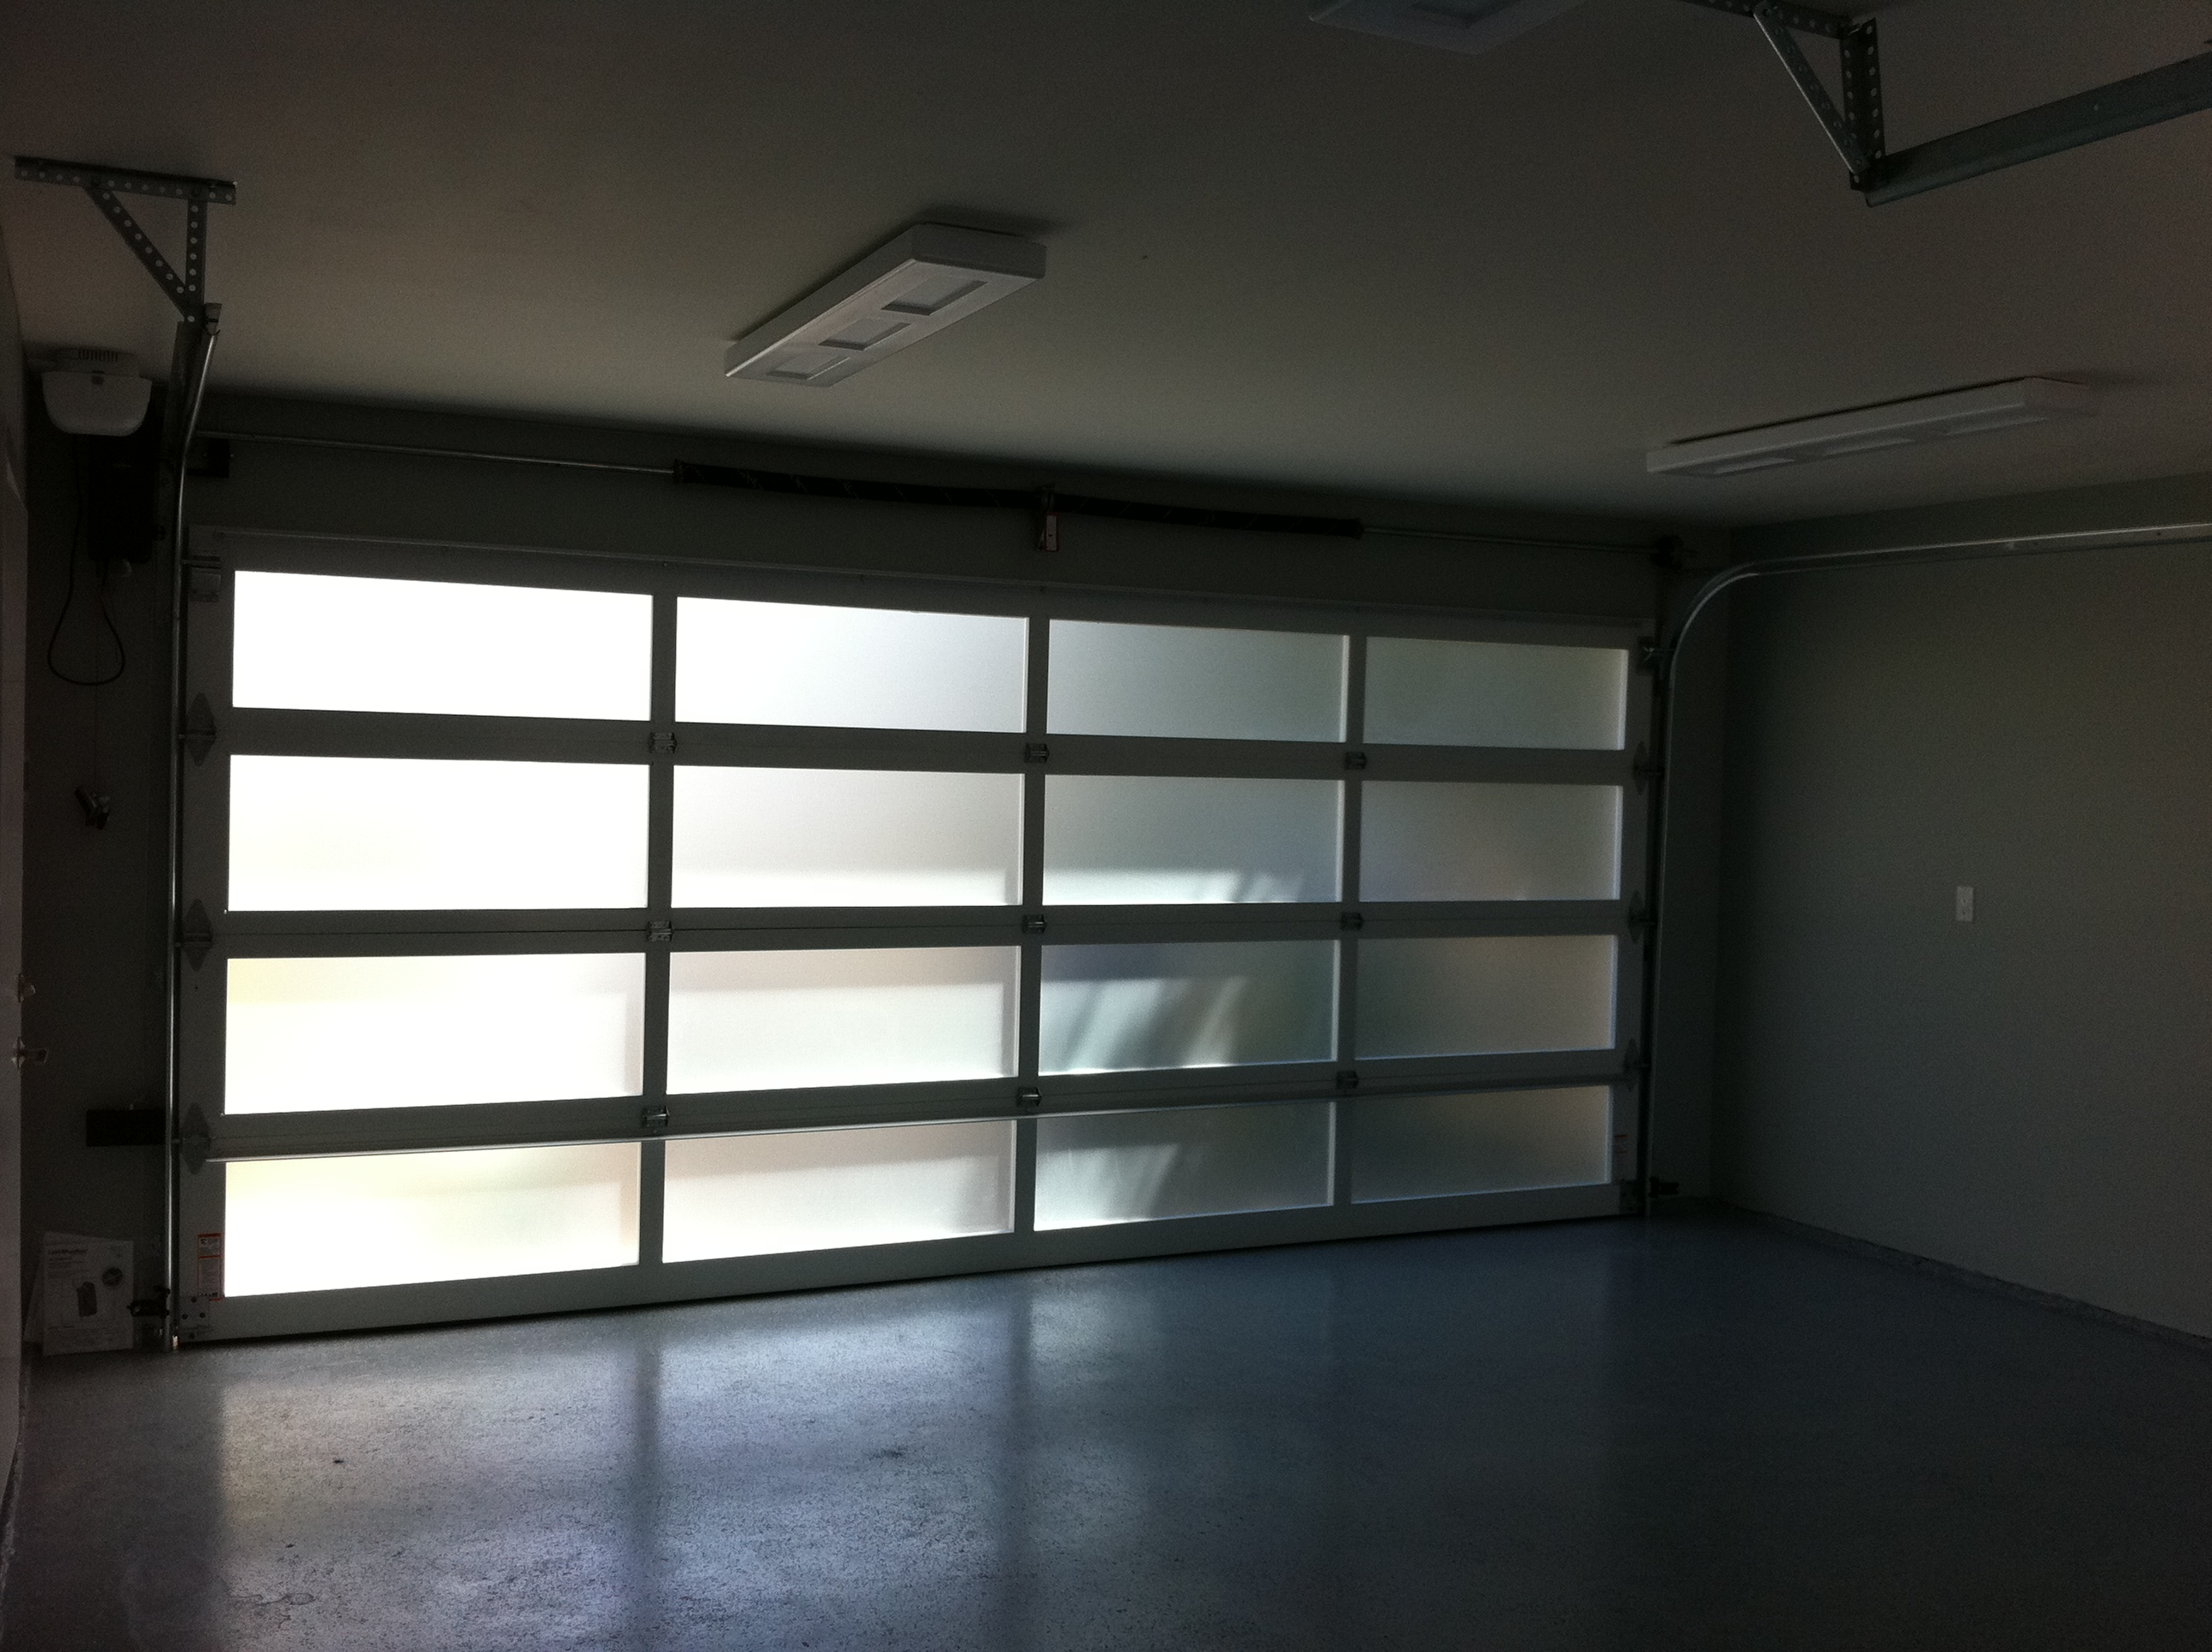 doors up x with glass images roll garage clear measurements design insulated ideas door